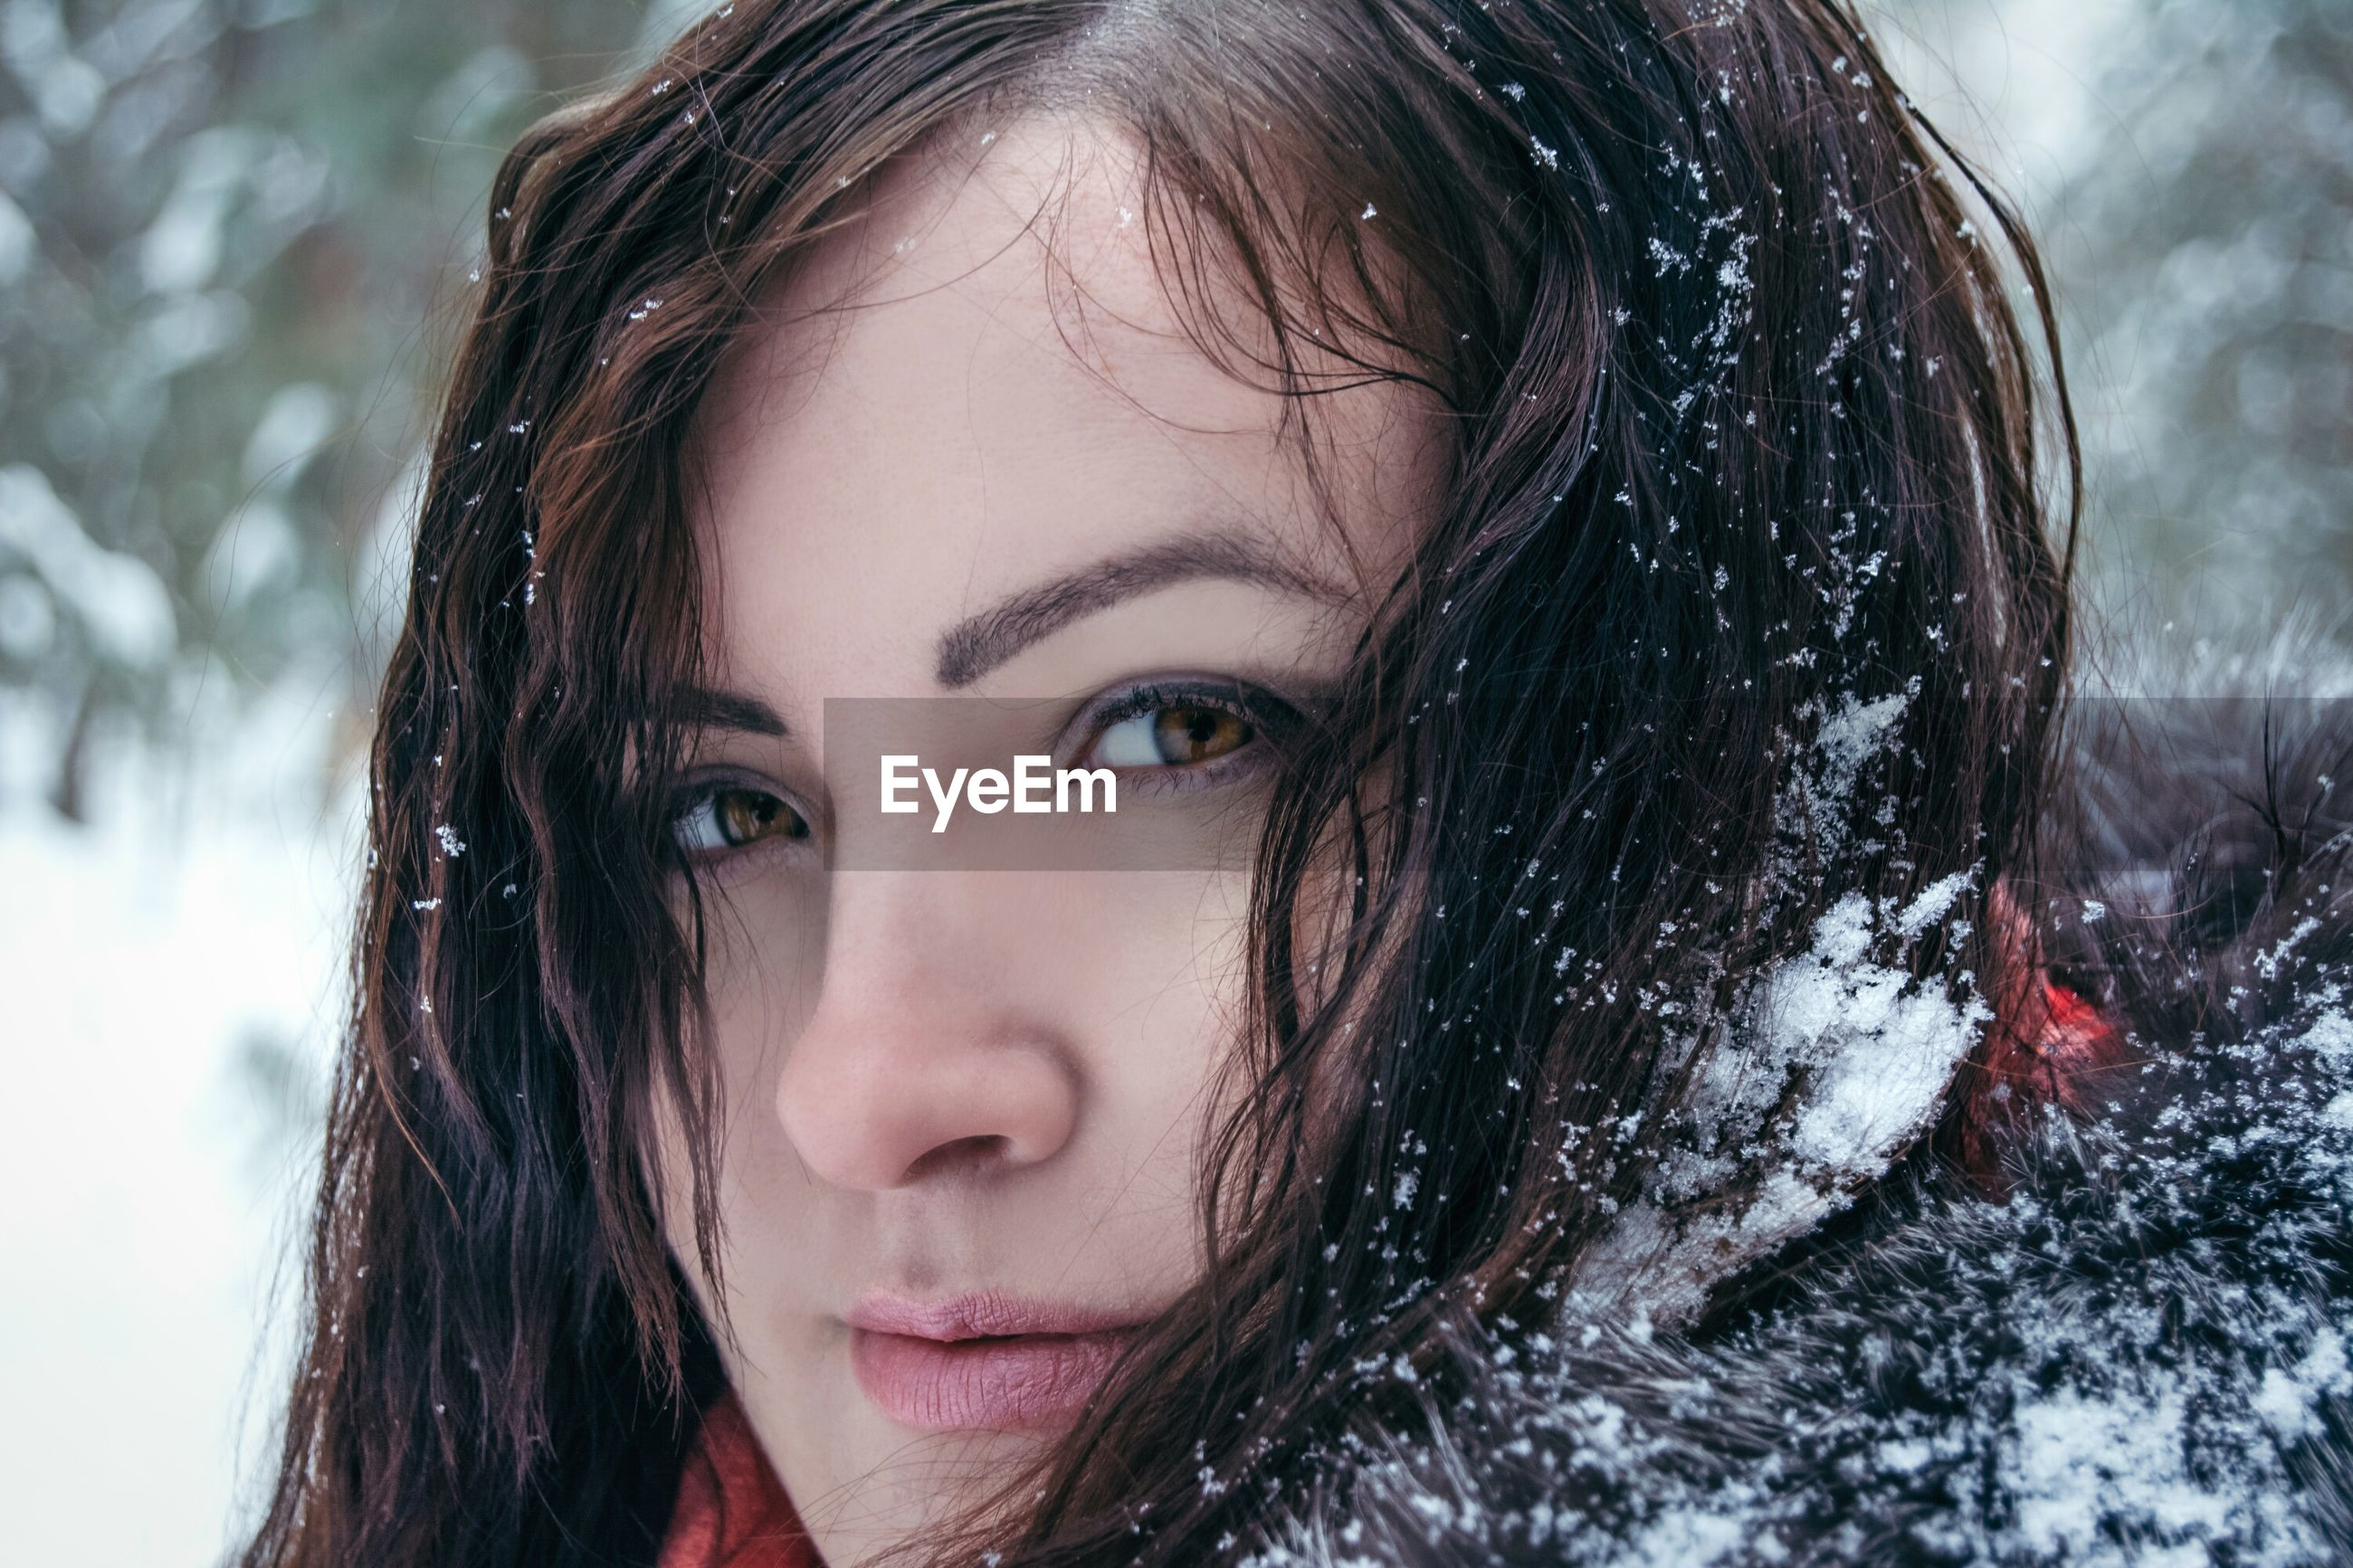 Close-up portrait of woman in snow